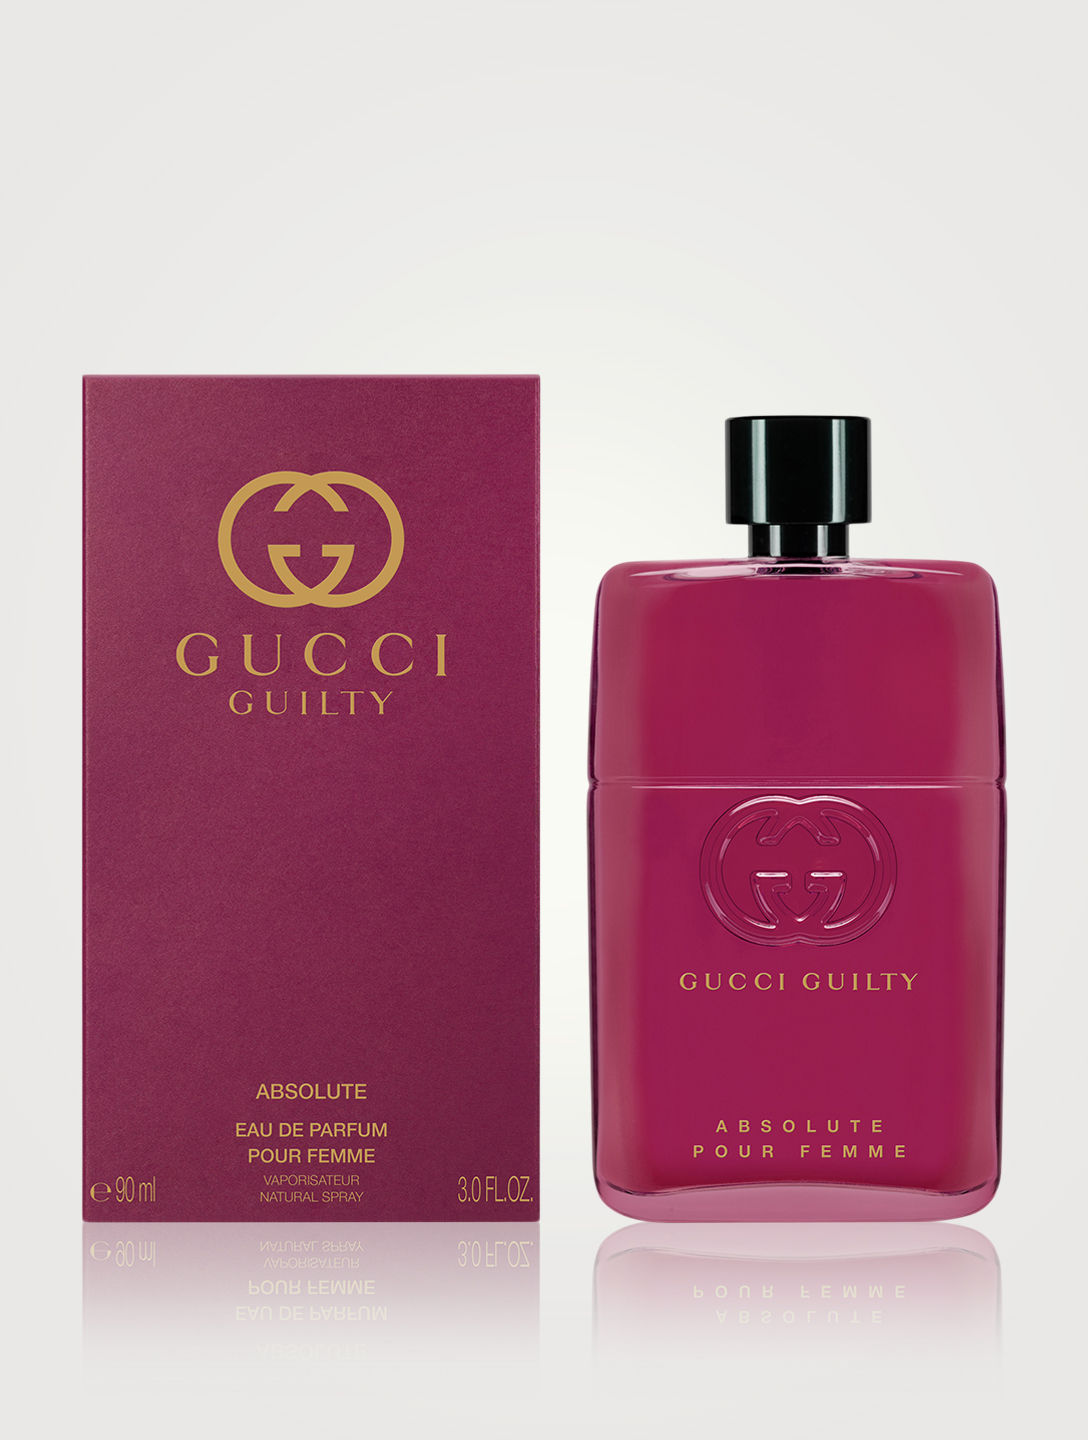 GUCCI Gucci Guilty Absolute For Her Beauty